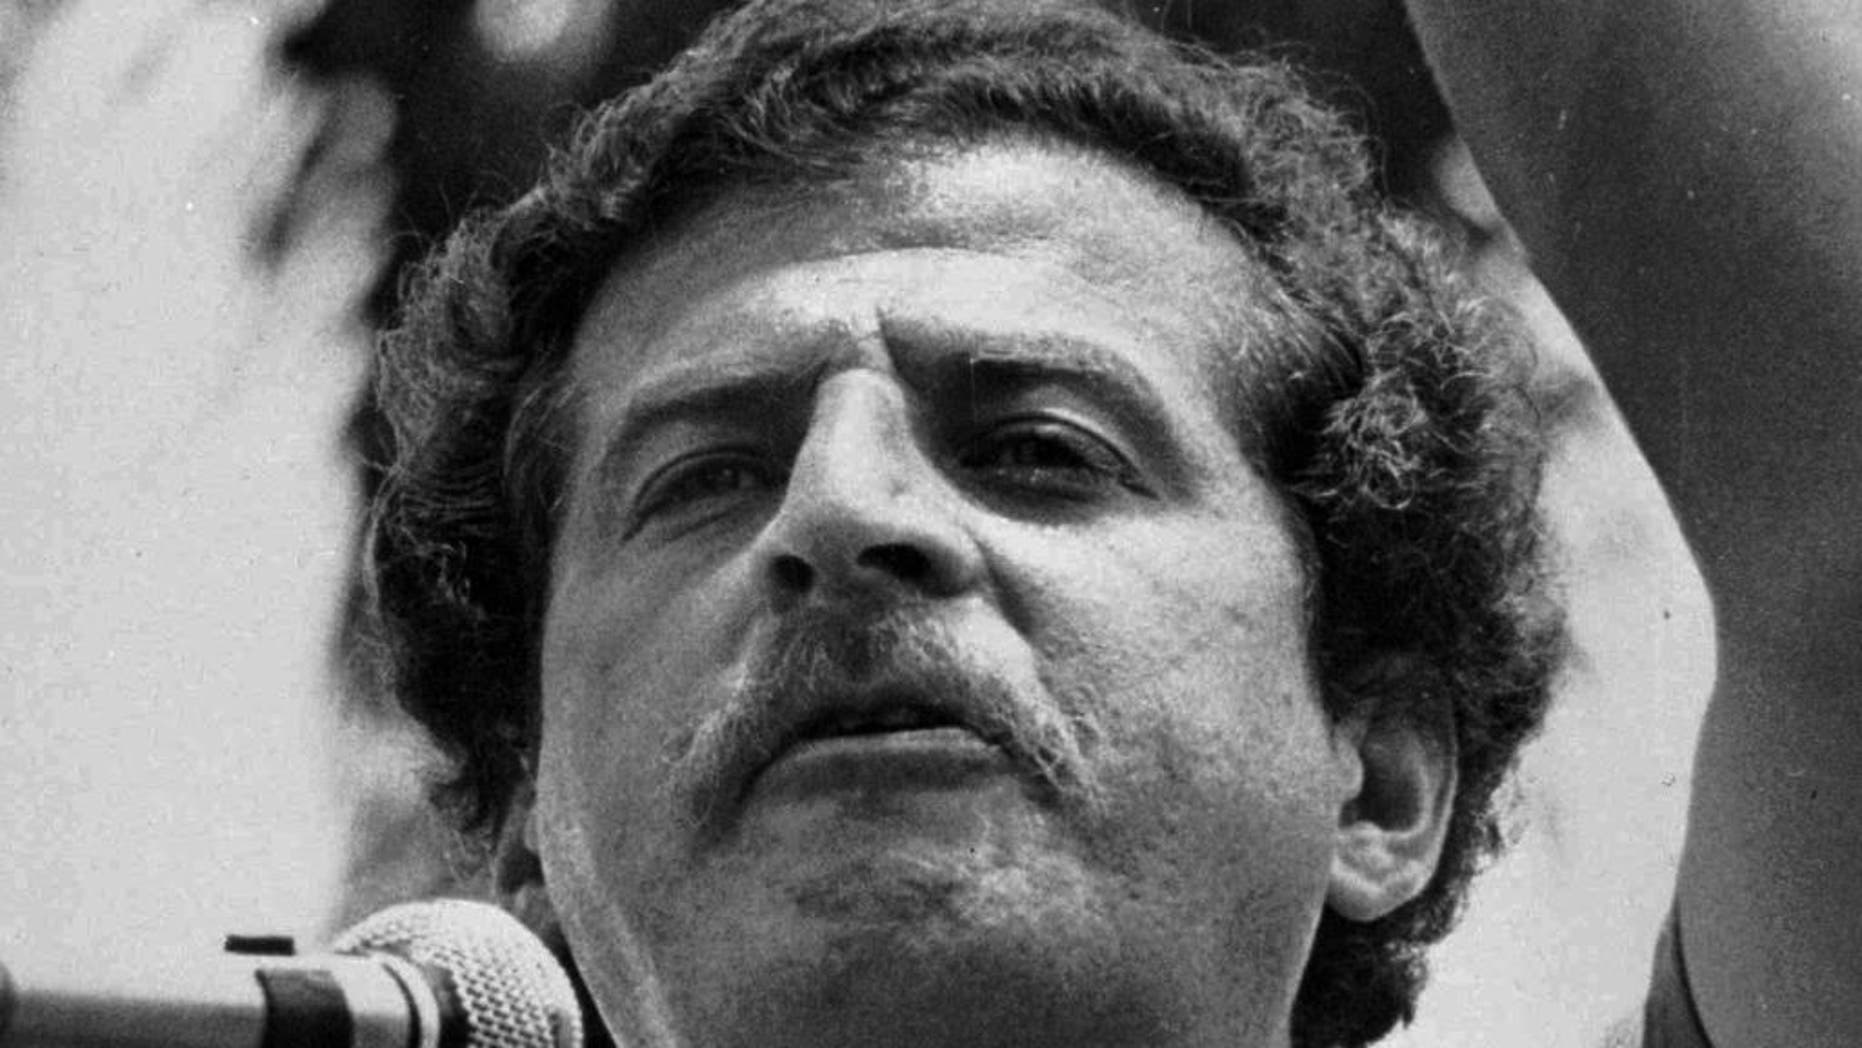 FILE - In this 1982 file photo, Luis Carlos Galan speaks at a political rally in Colombia. Retired Colombian general Miguel Maza has been found guilty by the Colombian Supreme Court on Thursday, Nov. 24, 2016, and sentenced to 30 years in prison for his role in the 1989 assassination of Galan, the top presidential contender a the time. (AP Photo/File)